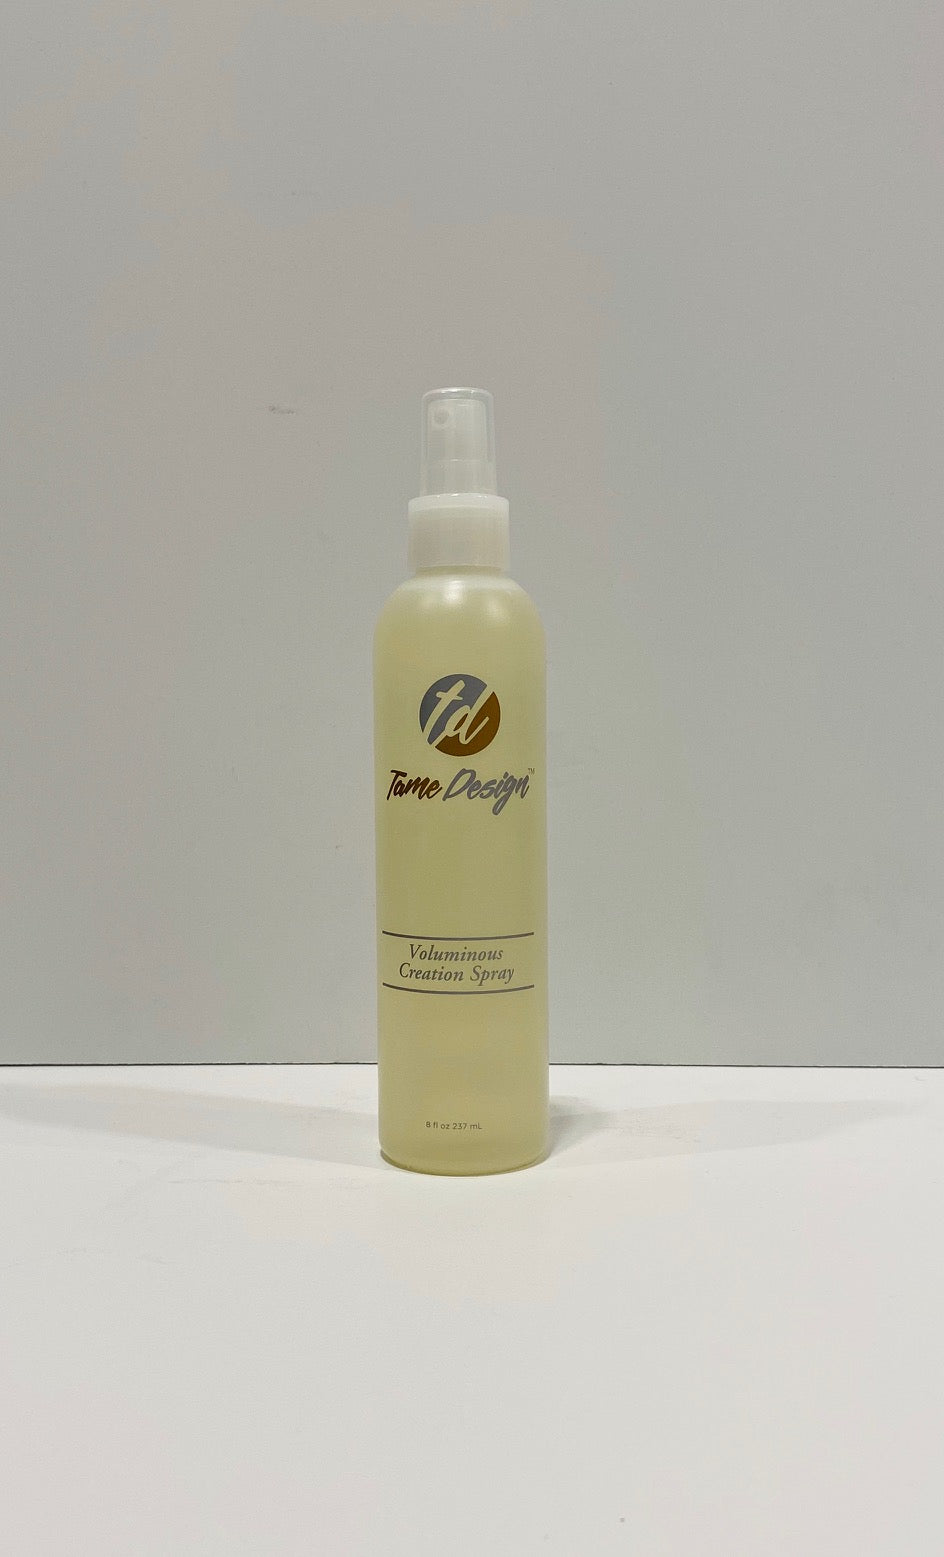 Voluminous Creation Spray